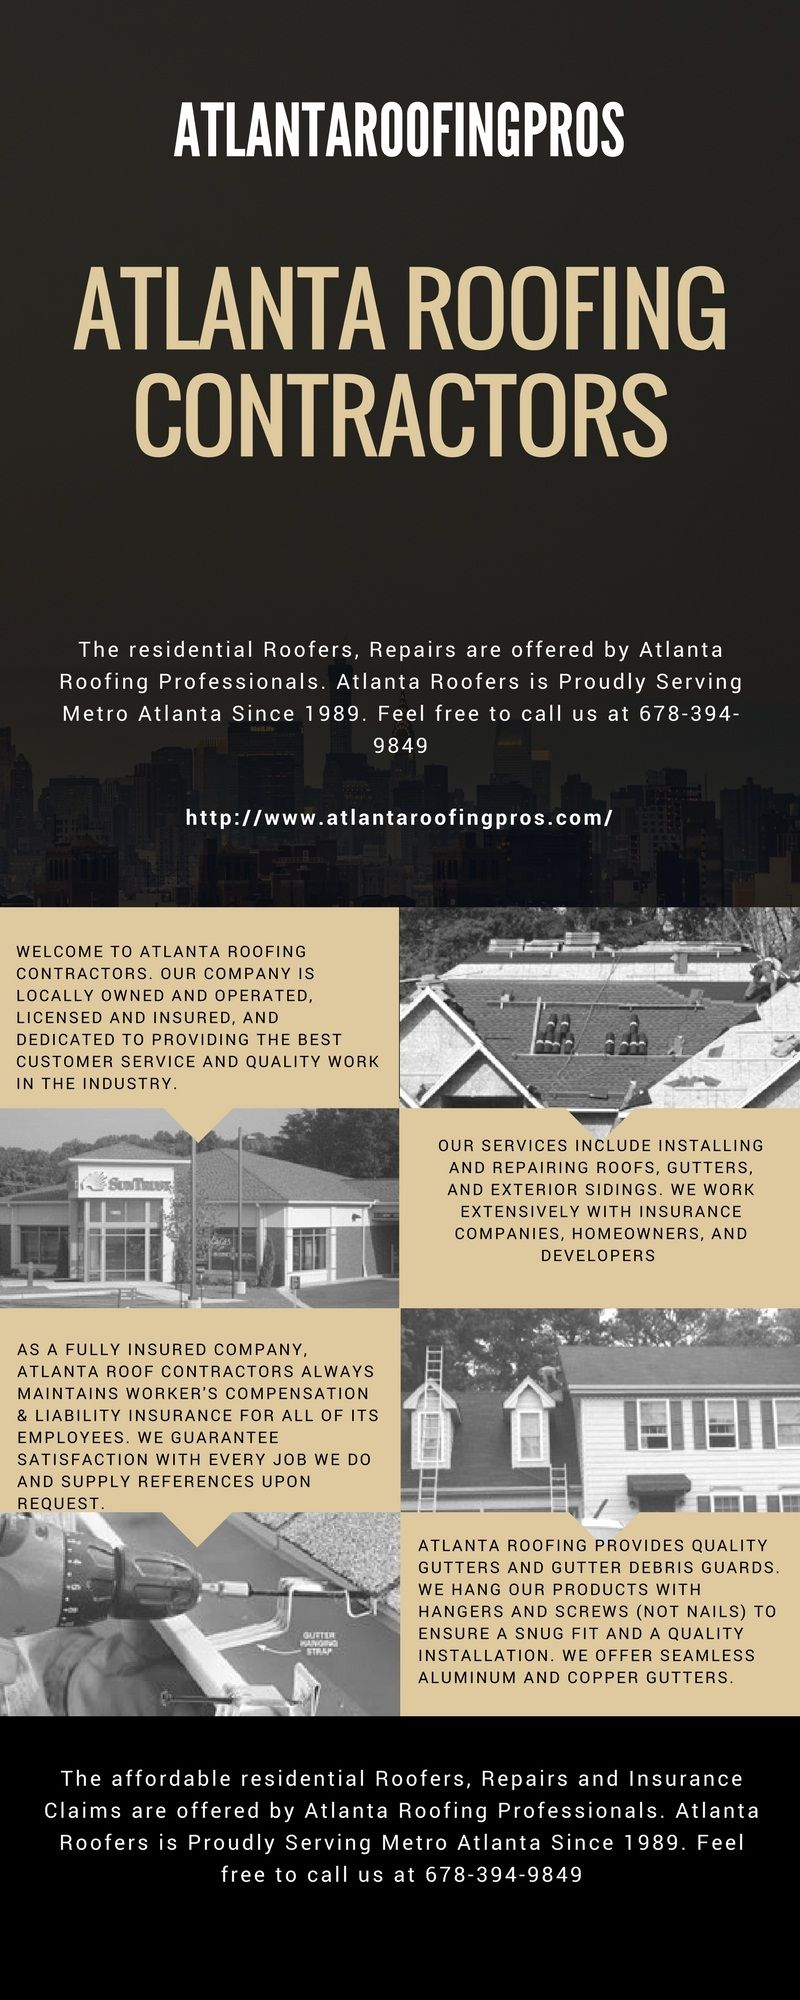 The Residential Roofers Repairs Are Offered By Atlanta Roofing Professionals Atlanta Roofers Is Proudly Serving Roofing Contractors Roofing Companies Roofing